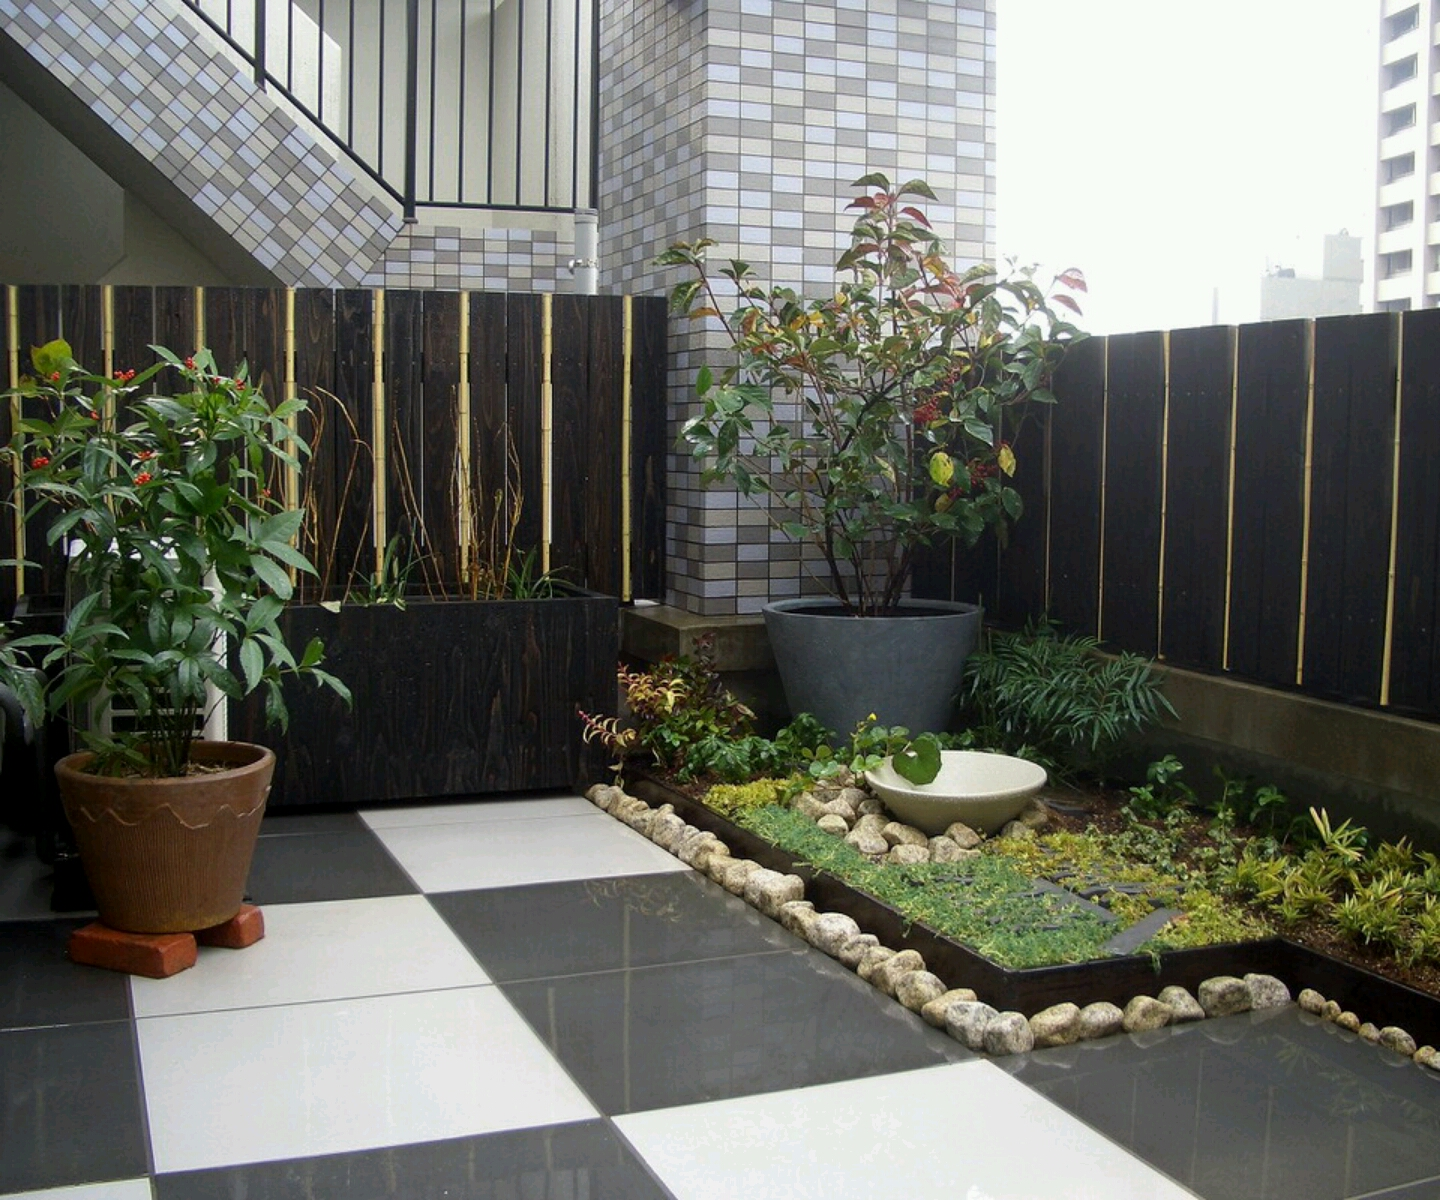 Ultra modern garden design inspiration interior designs for Home garden ideas